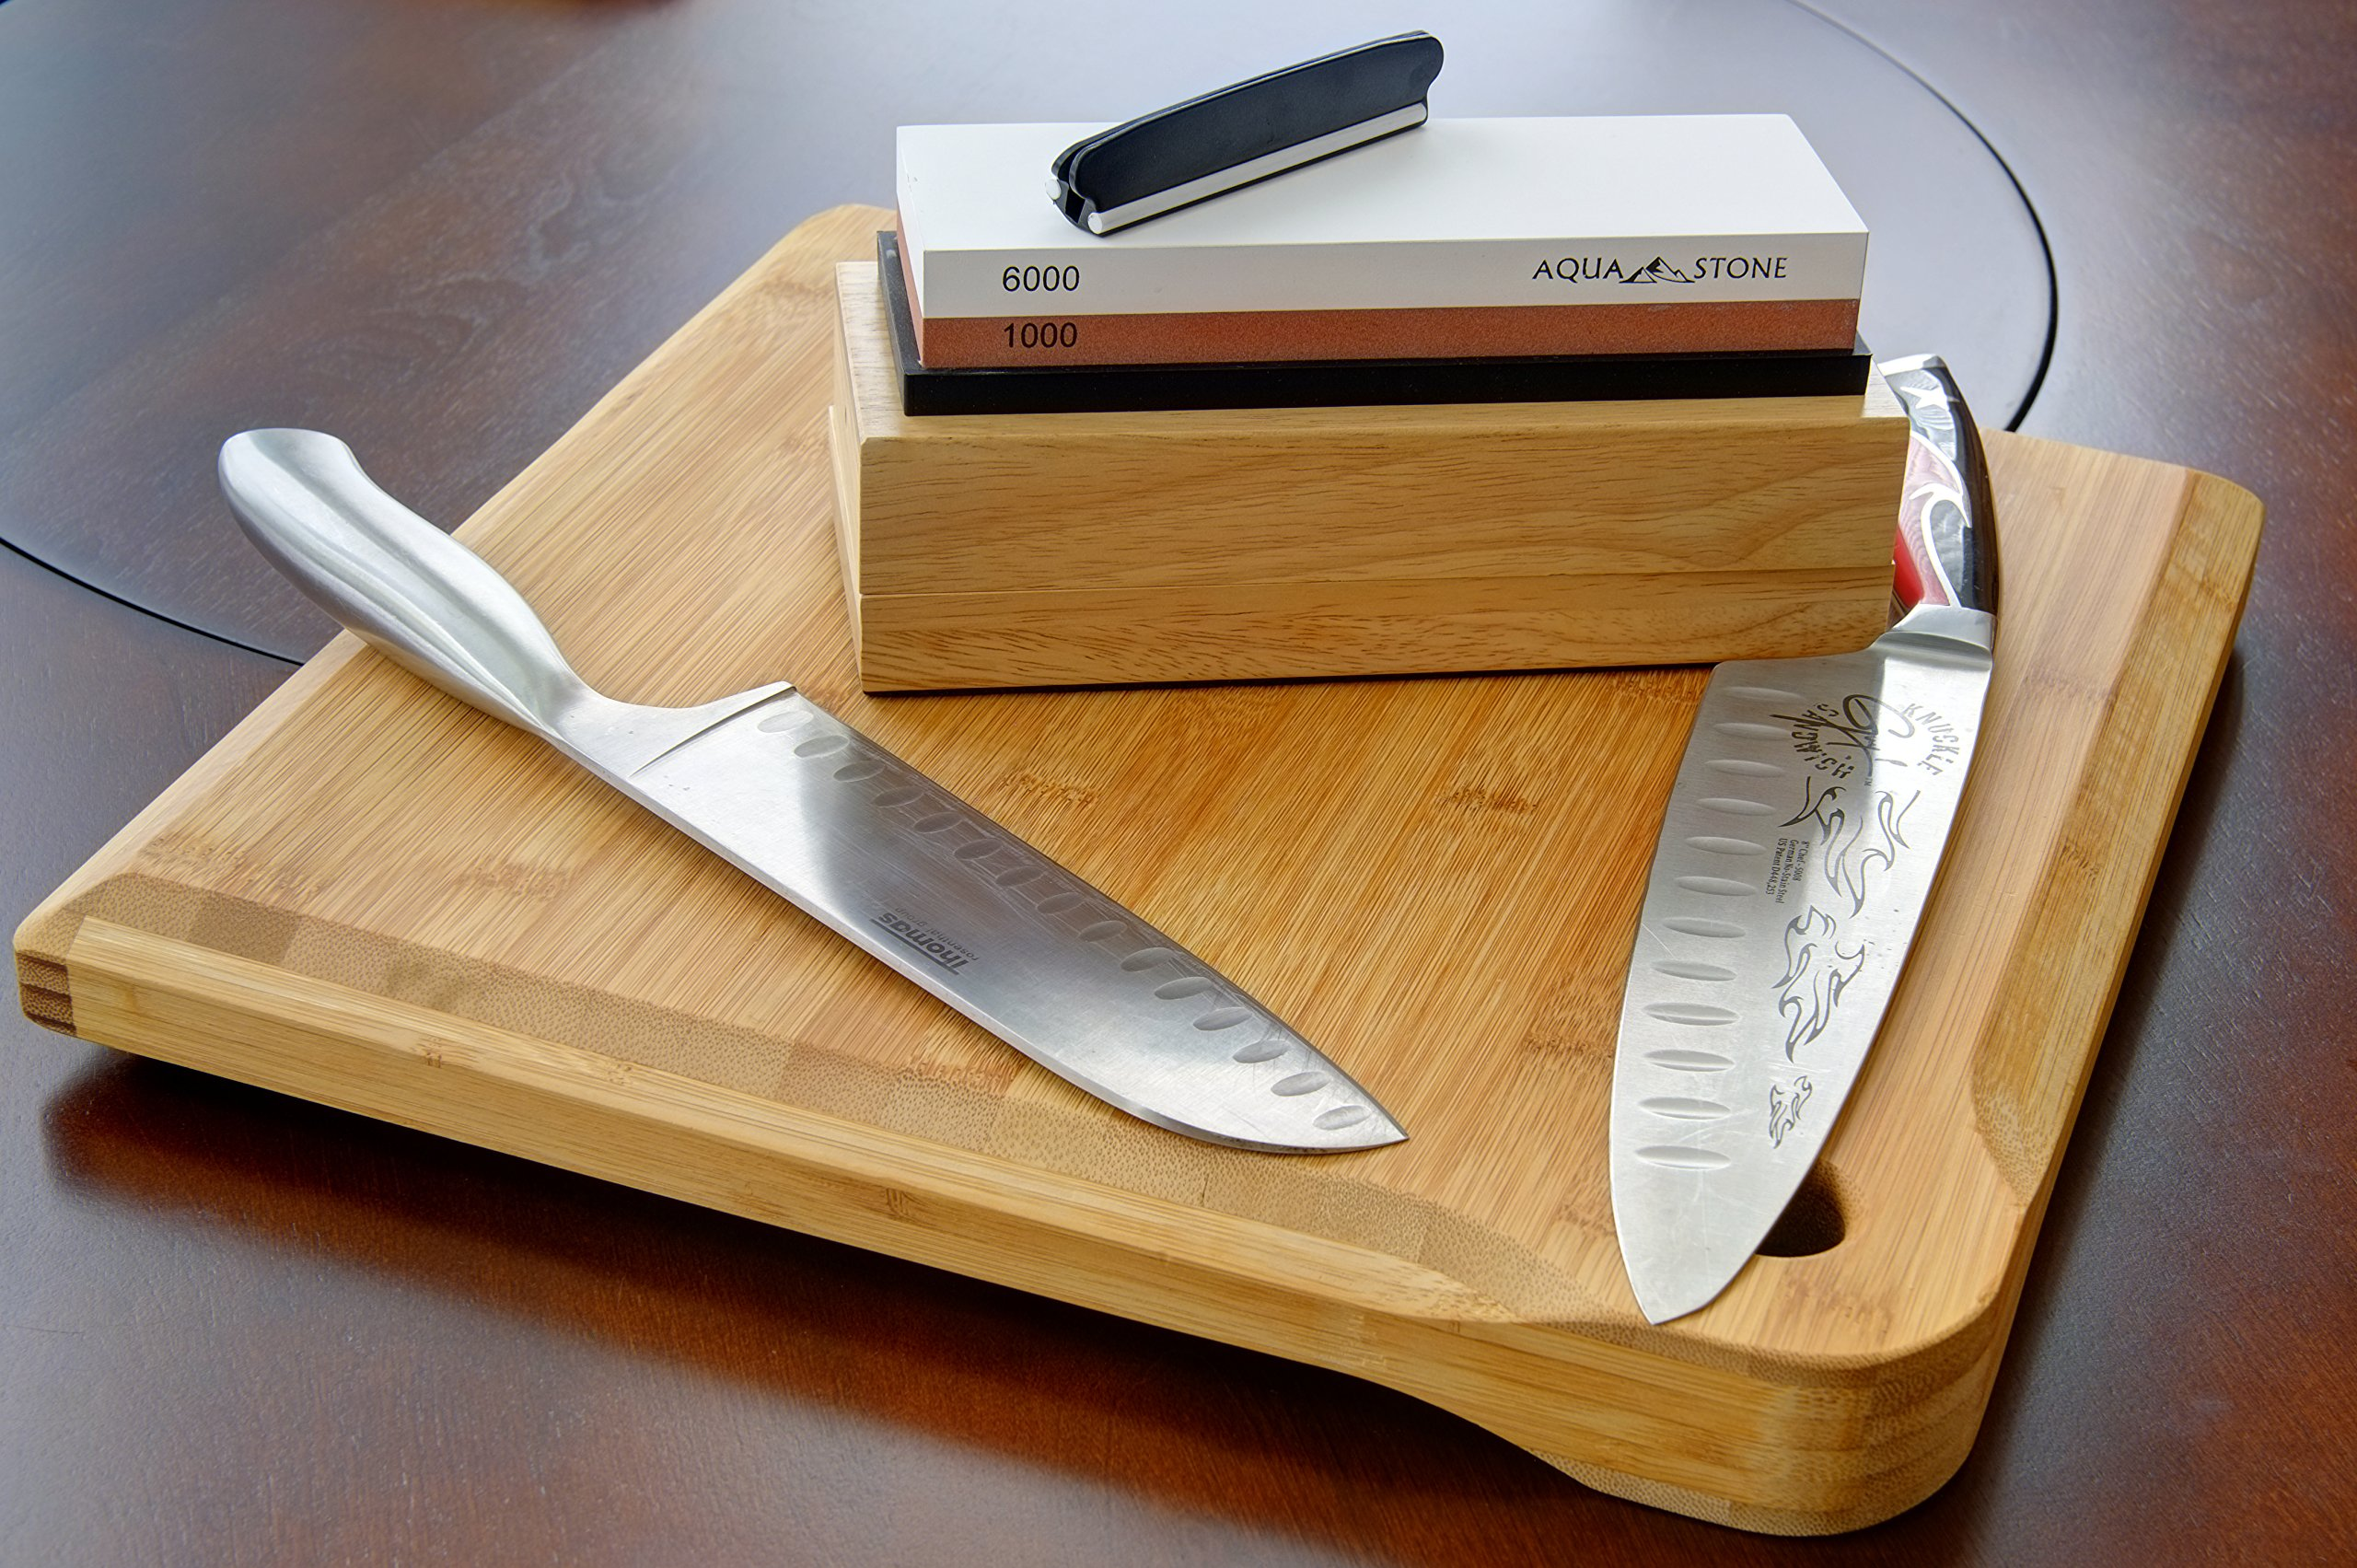 Professional Knife Sharpener 2 Side Sharpening Stone Kit For Chefs, Home Kitchen Knives.Whetstone Grit 1000/6000 Watersone,NonSlip Wood Base, FREE Angle Guide, Silicone Base with Stylish Wood GIFT Box by Aquastone (Image #6)